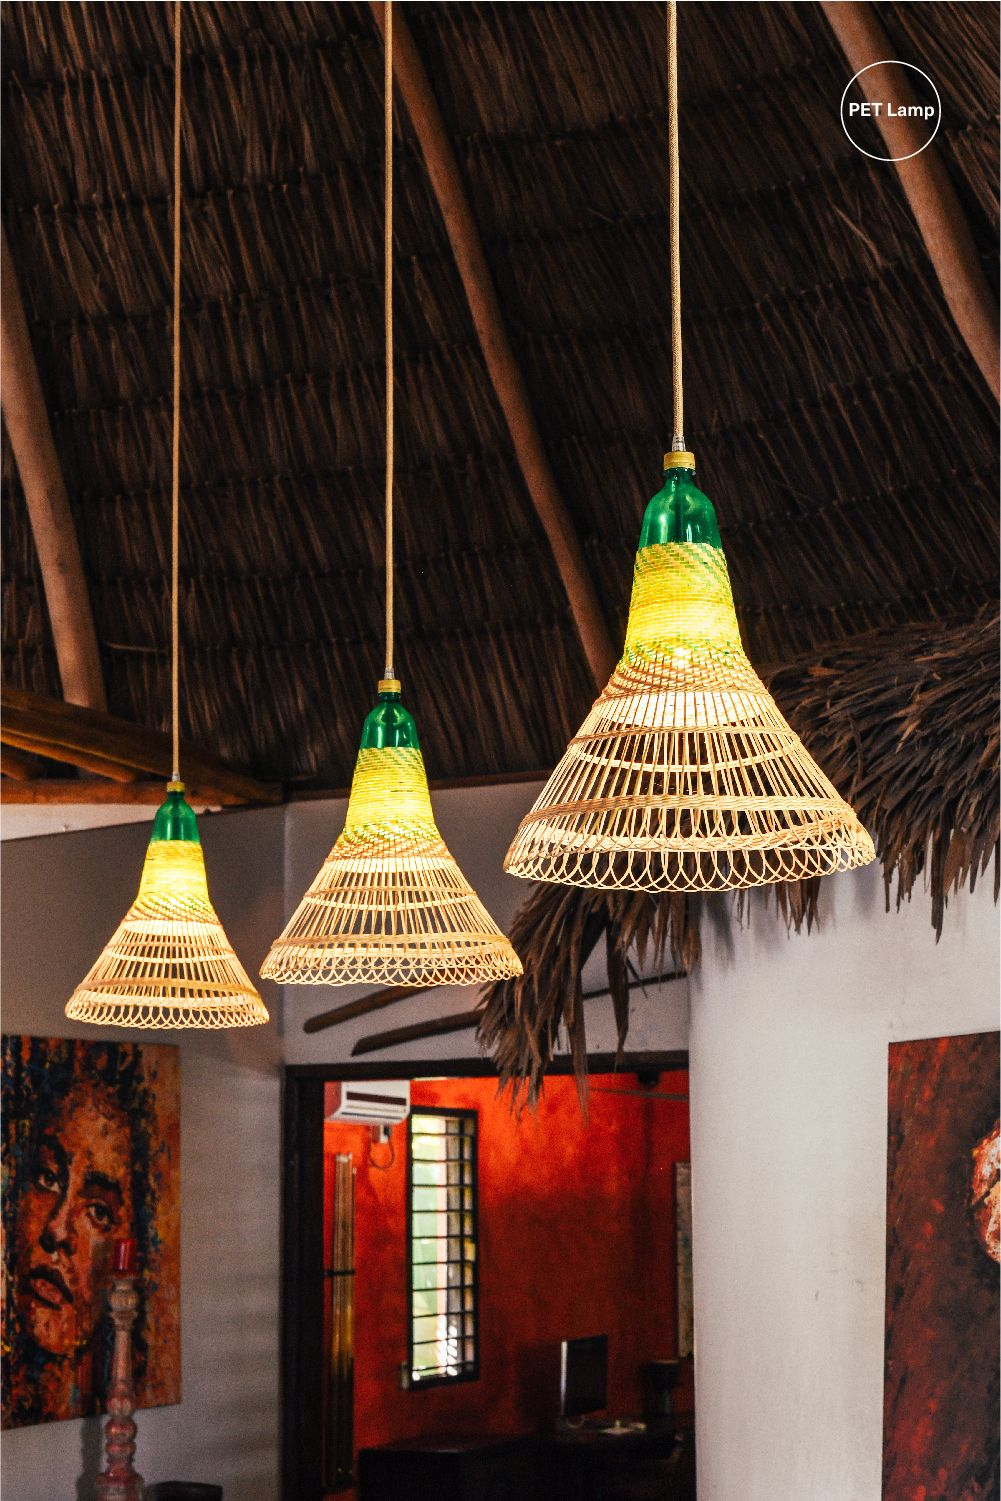 A Tall Thatched Ceiling Of A Hotel Lit By Pet Lamp Pendant Lights In 2020 Hotel Light Hanging Lights Lights